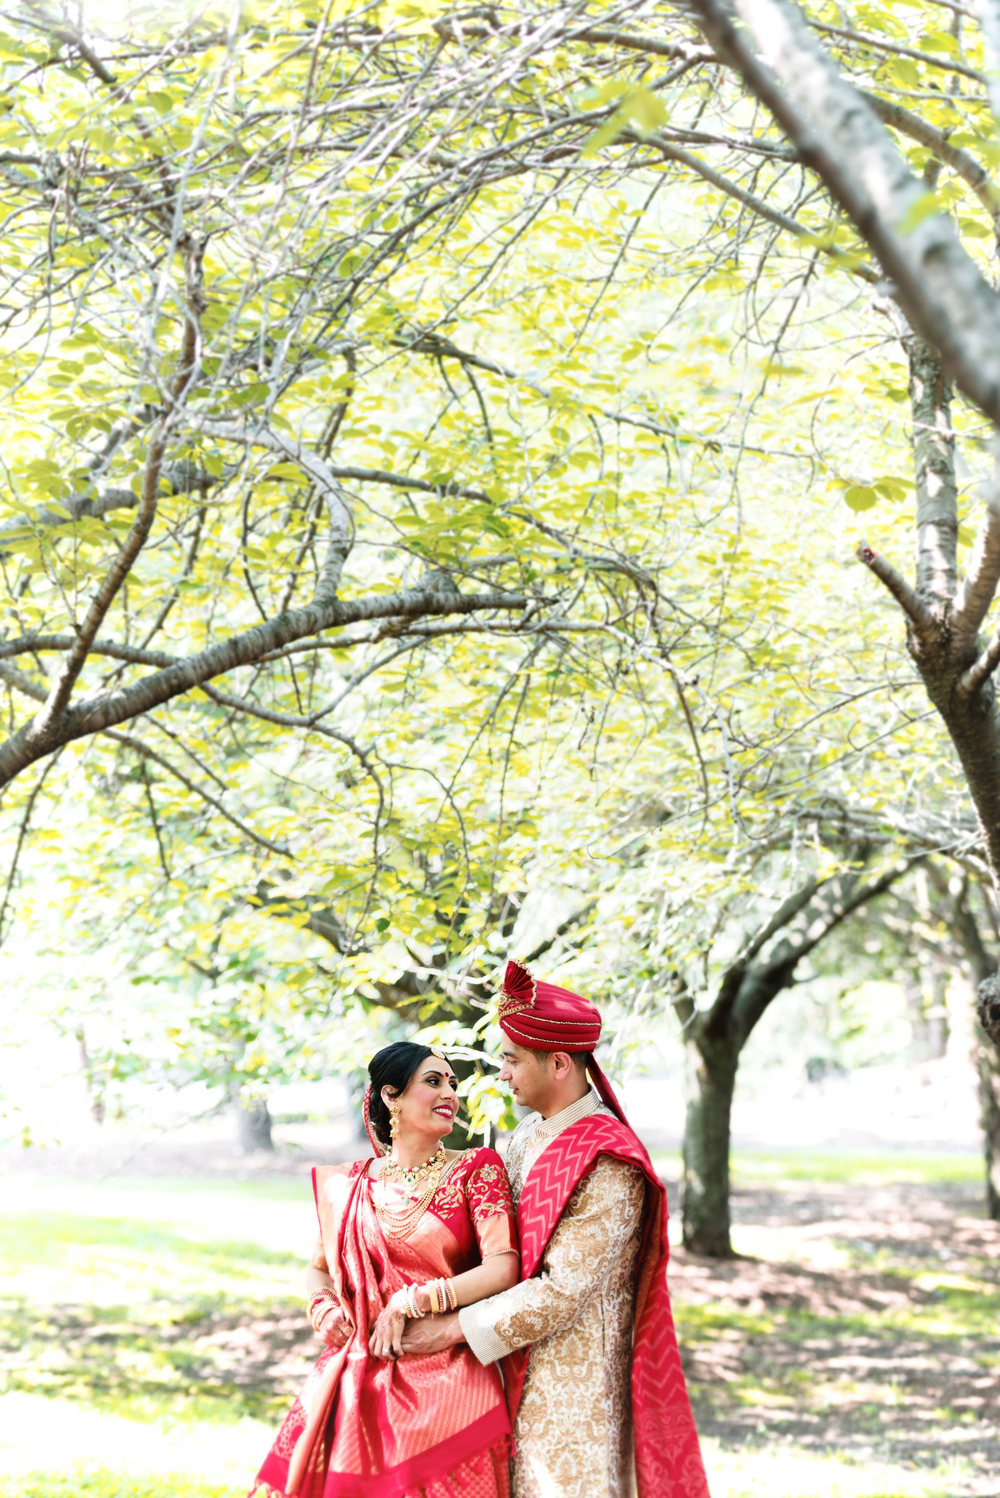 Our wedding portraits always reflect the true personalities of our clients; they are not heavily posed and are very modern and capture the true essence of the moment in a very artistic fashion.